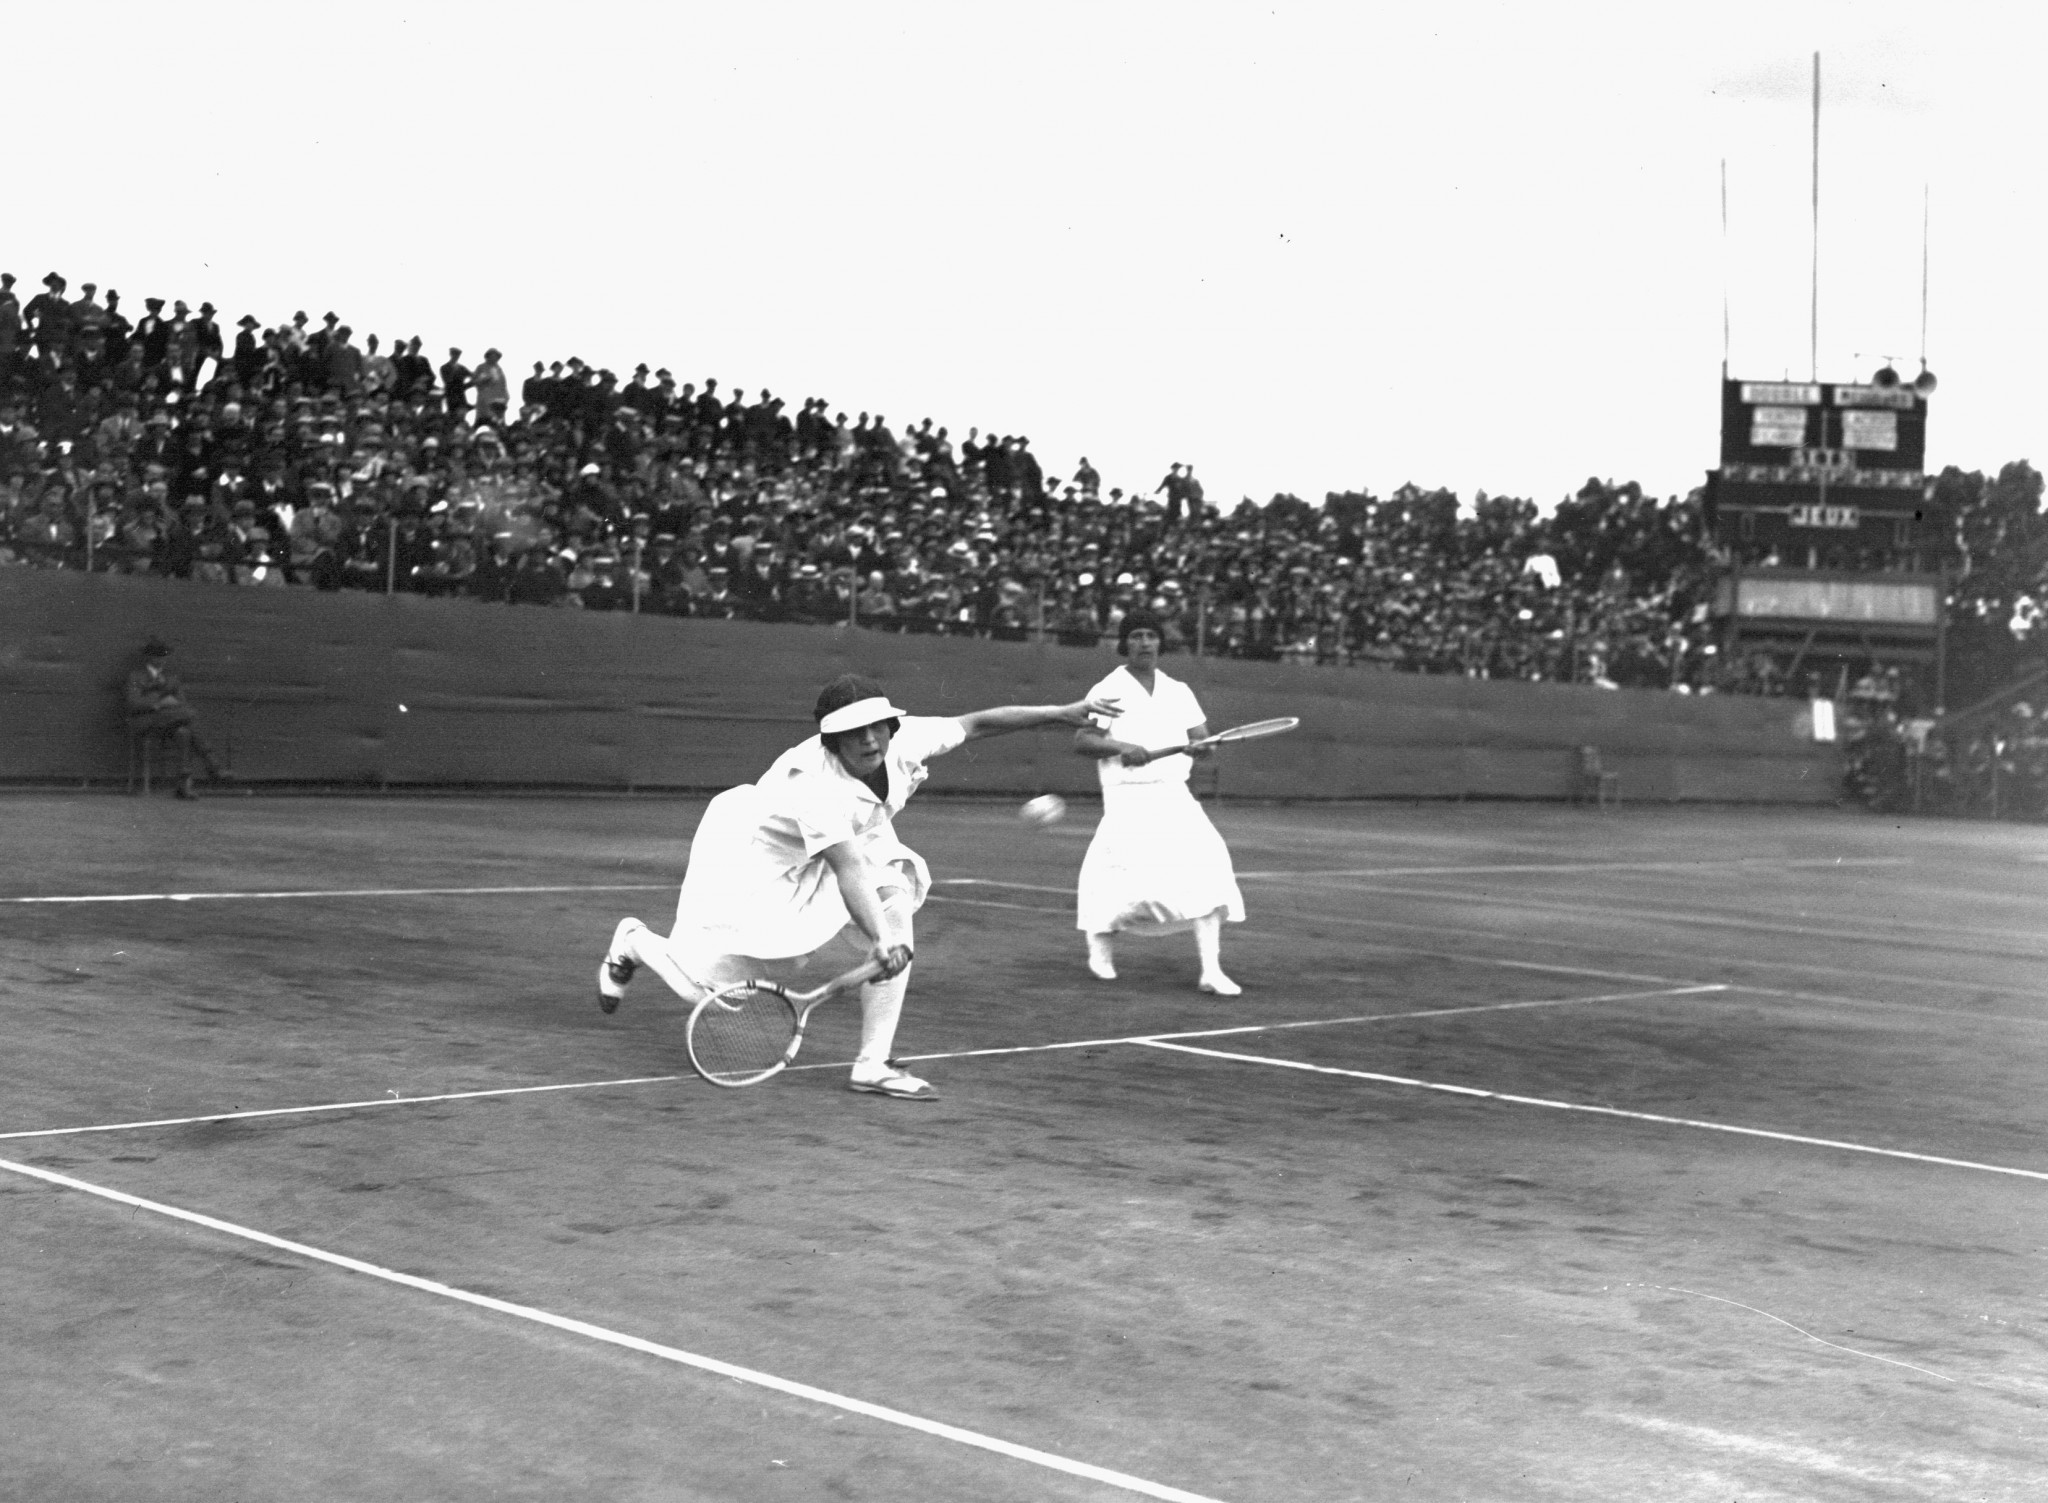 Female tennis players in action at Paris 2024